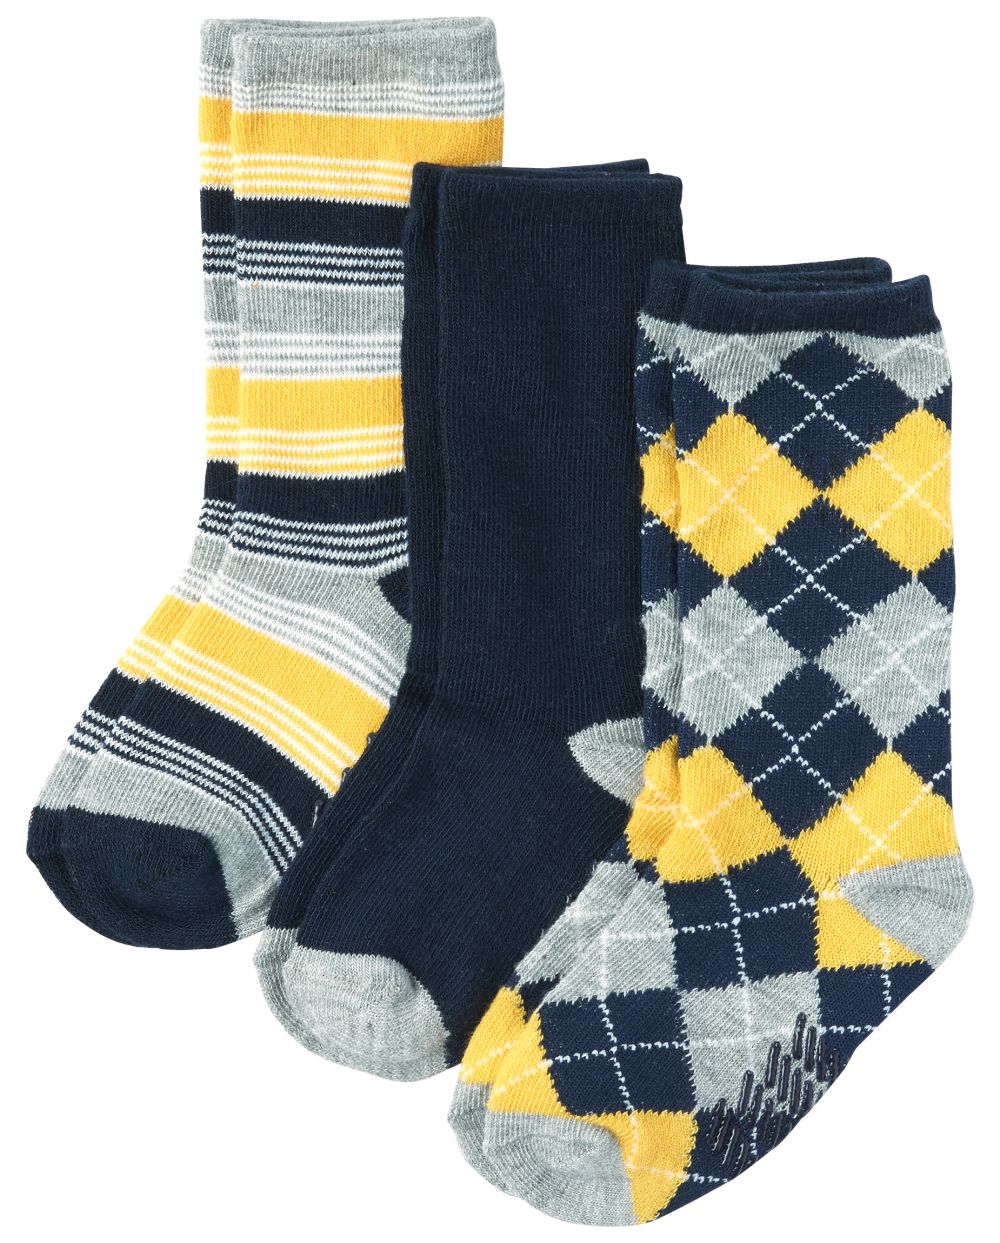 Toddler Boys Argyle And Striped Crew Socks 3-Pack